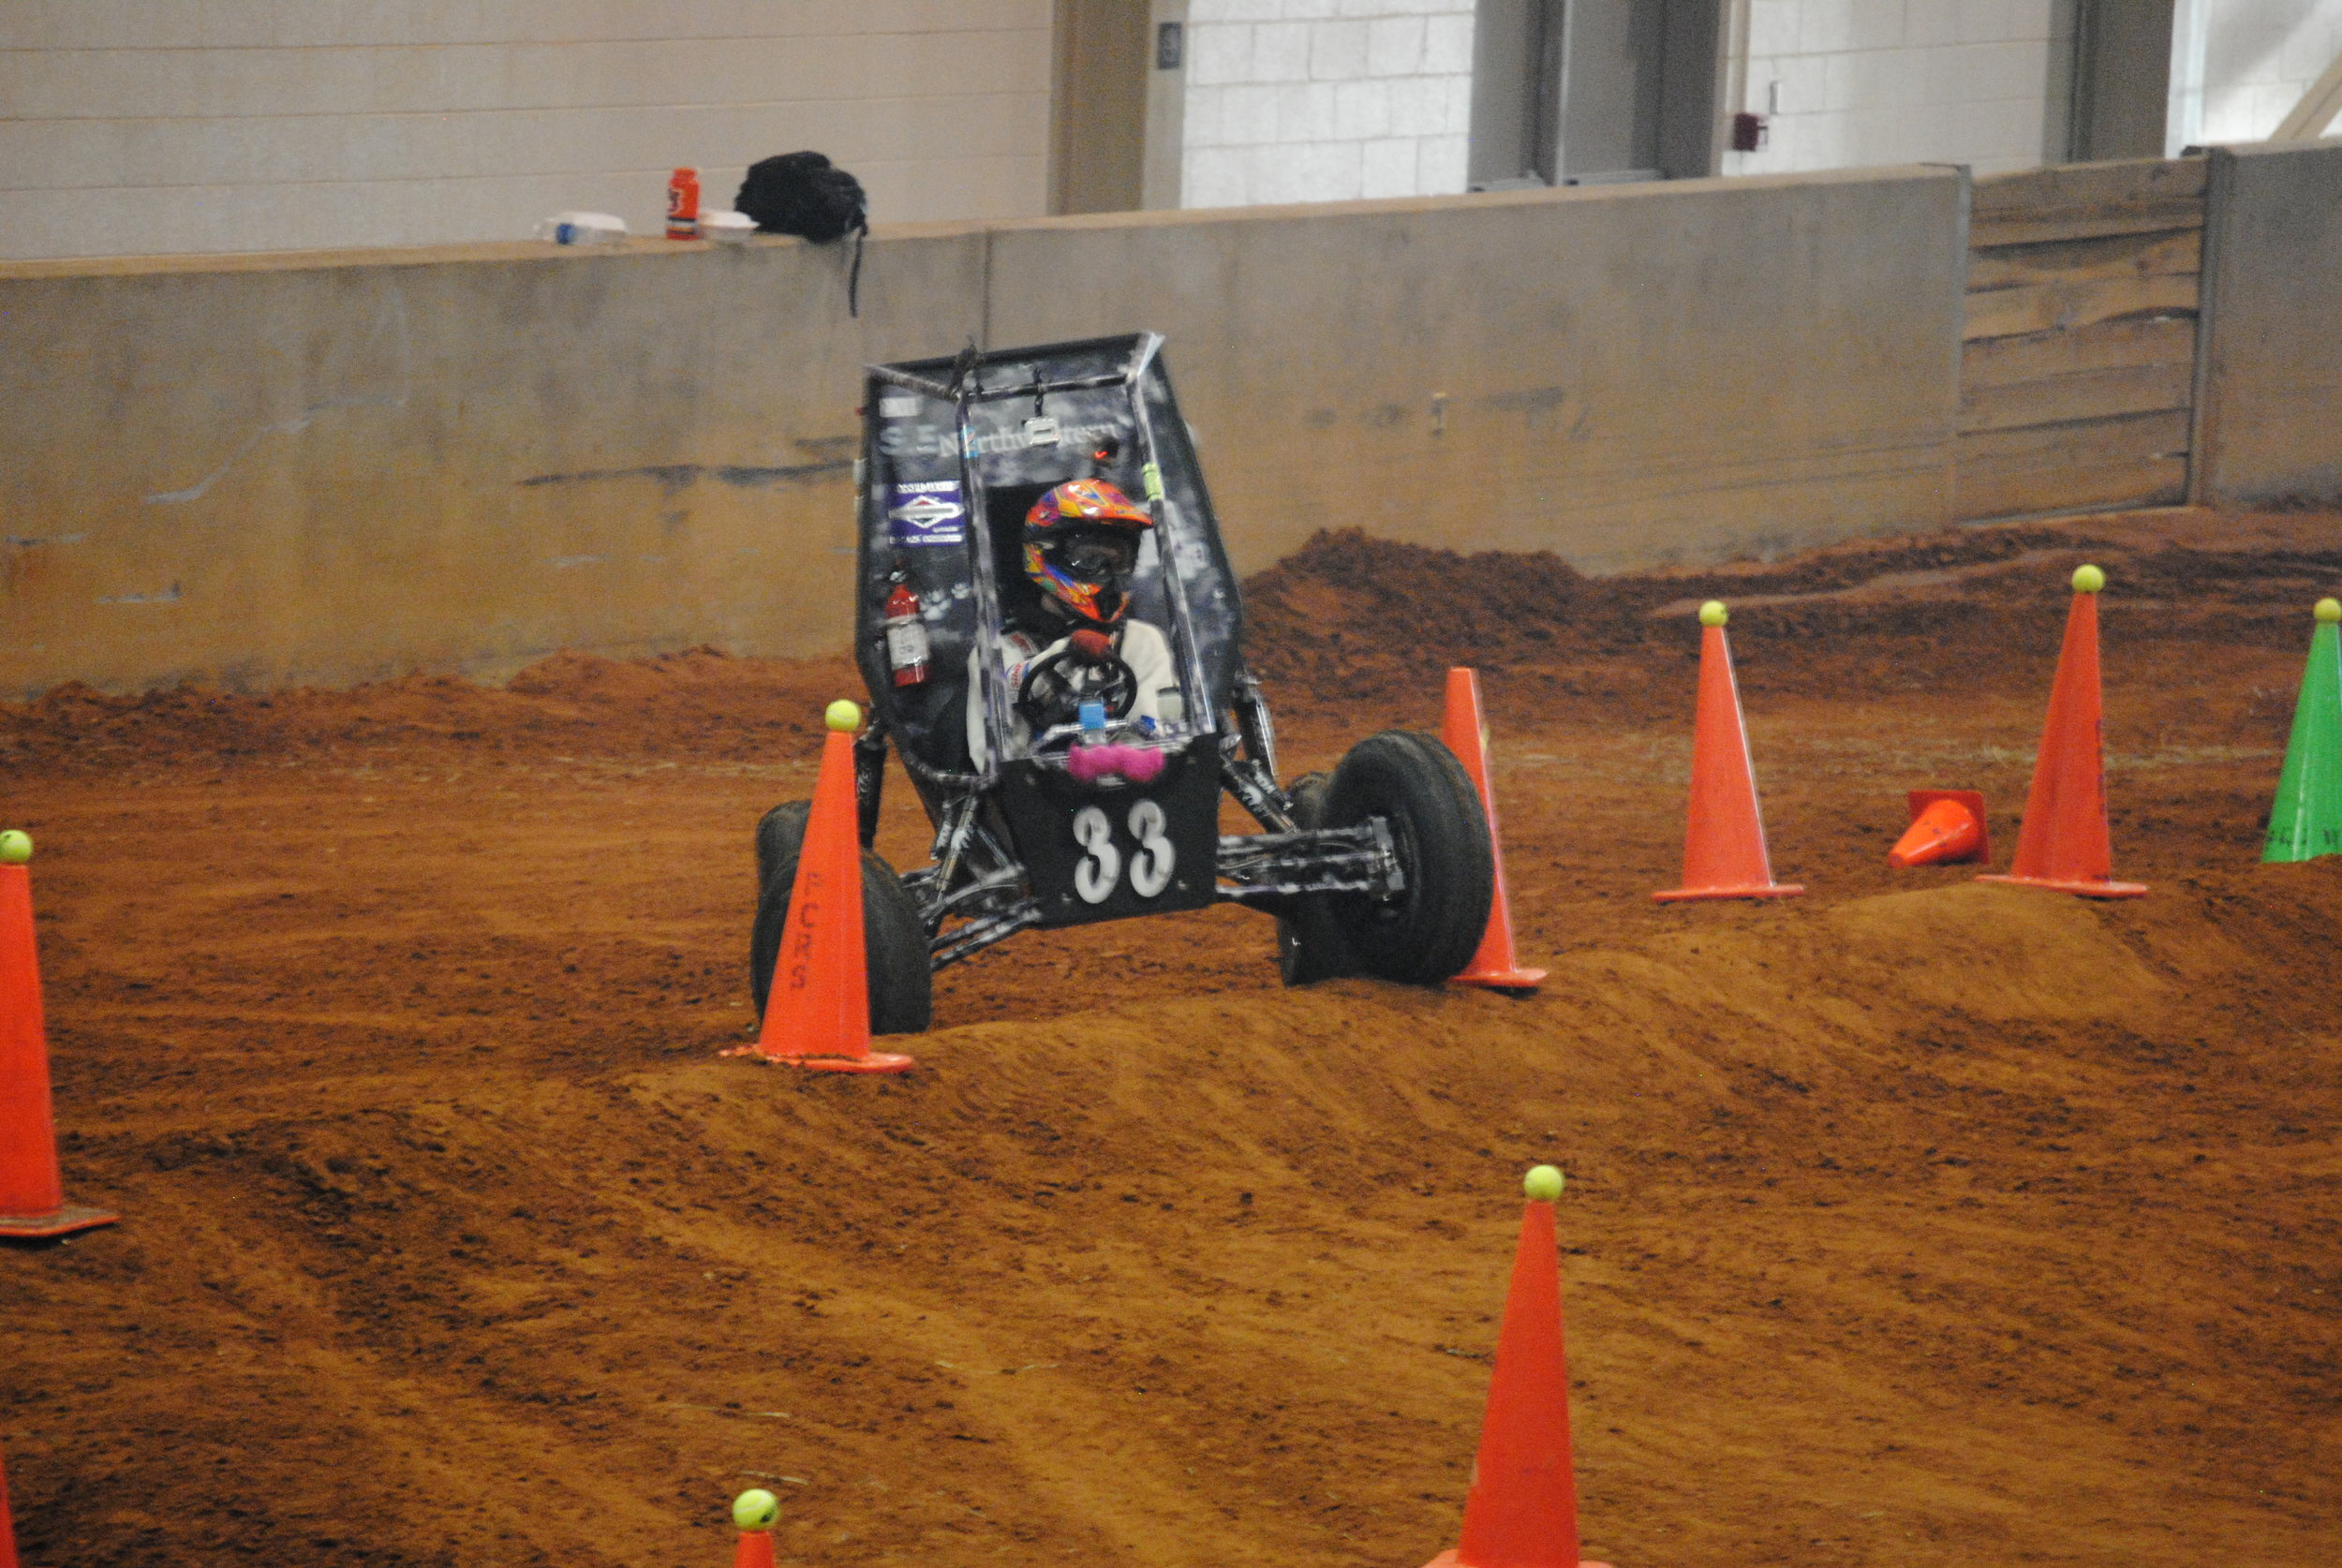 Mikey and Drew expertly navigated the Maneuverability course